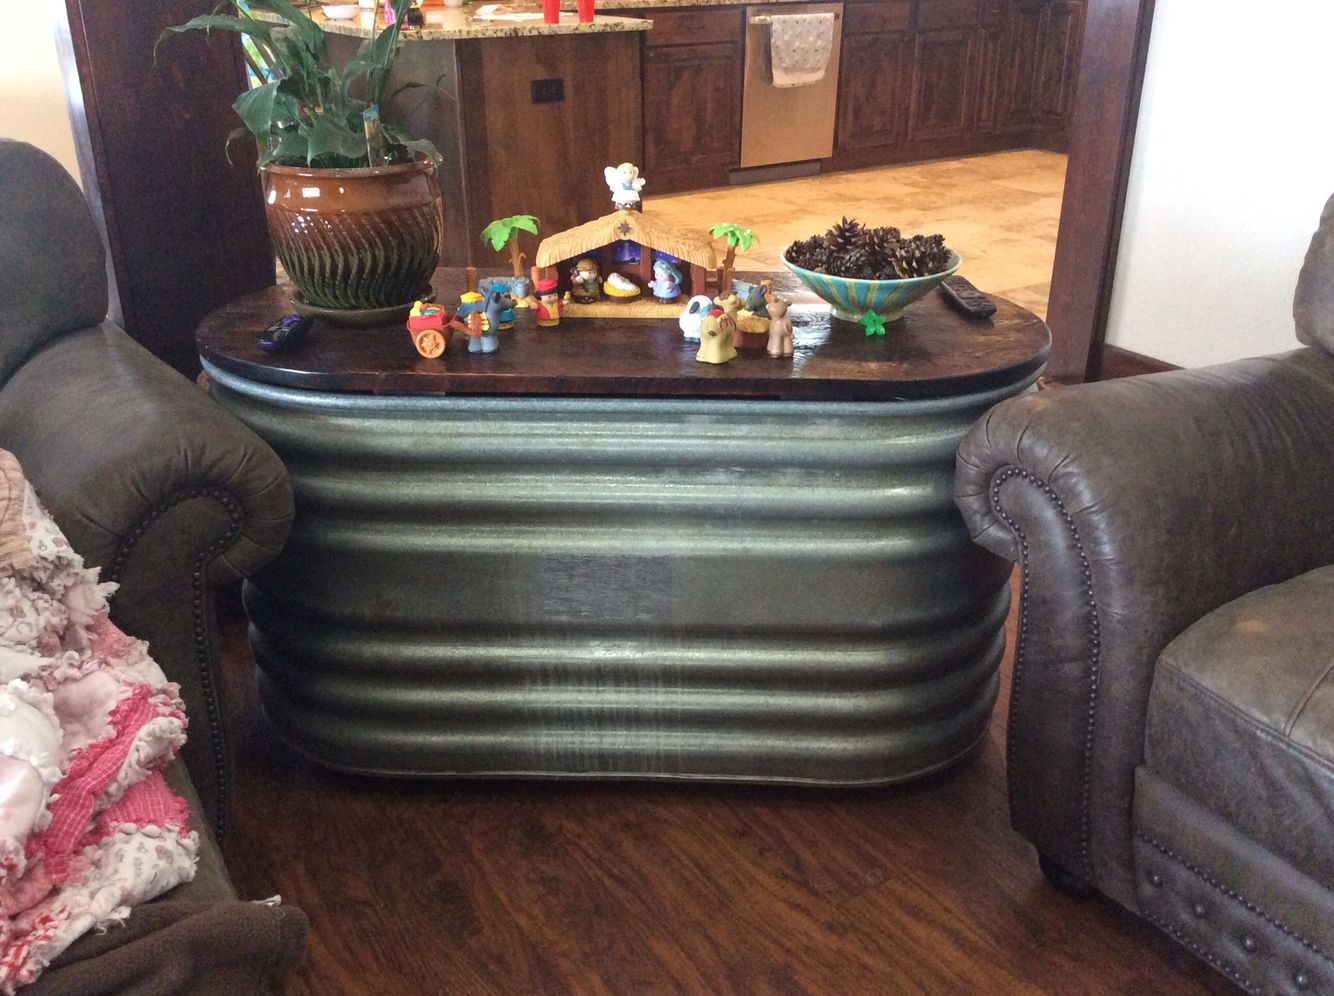 Stock tank living room table with storage for girls toys